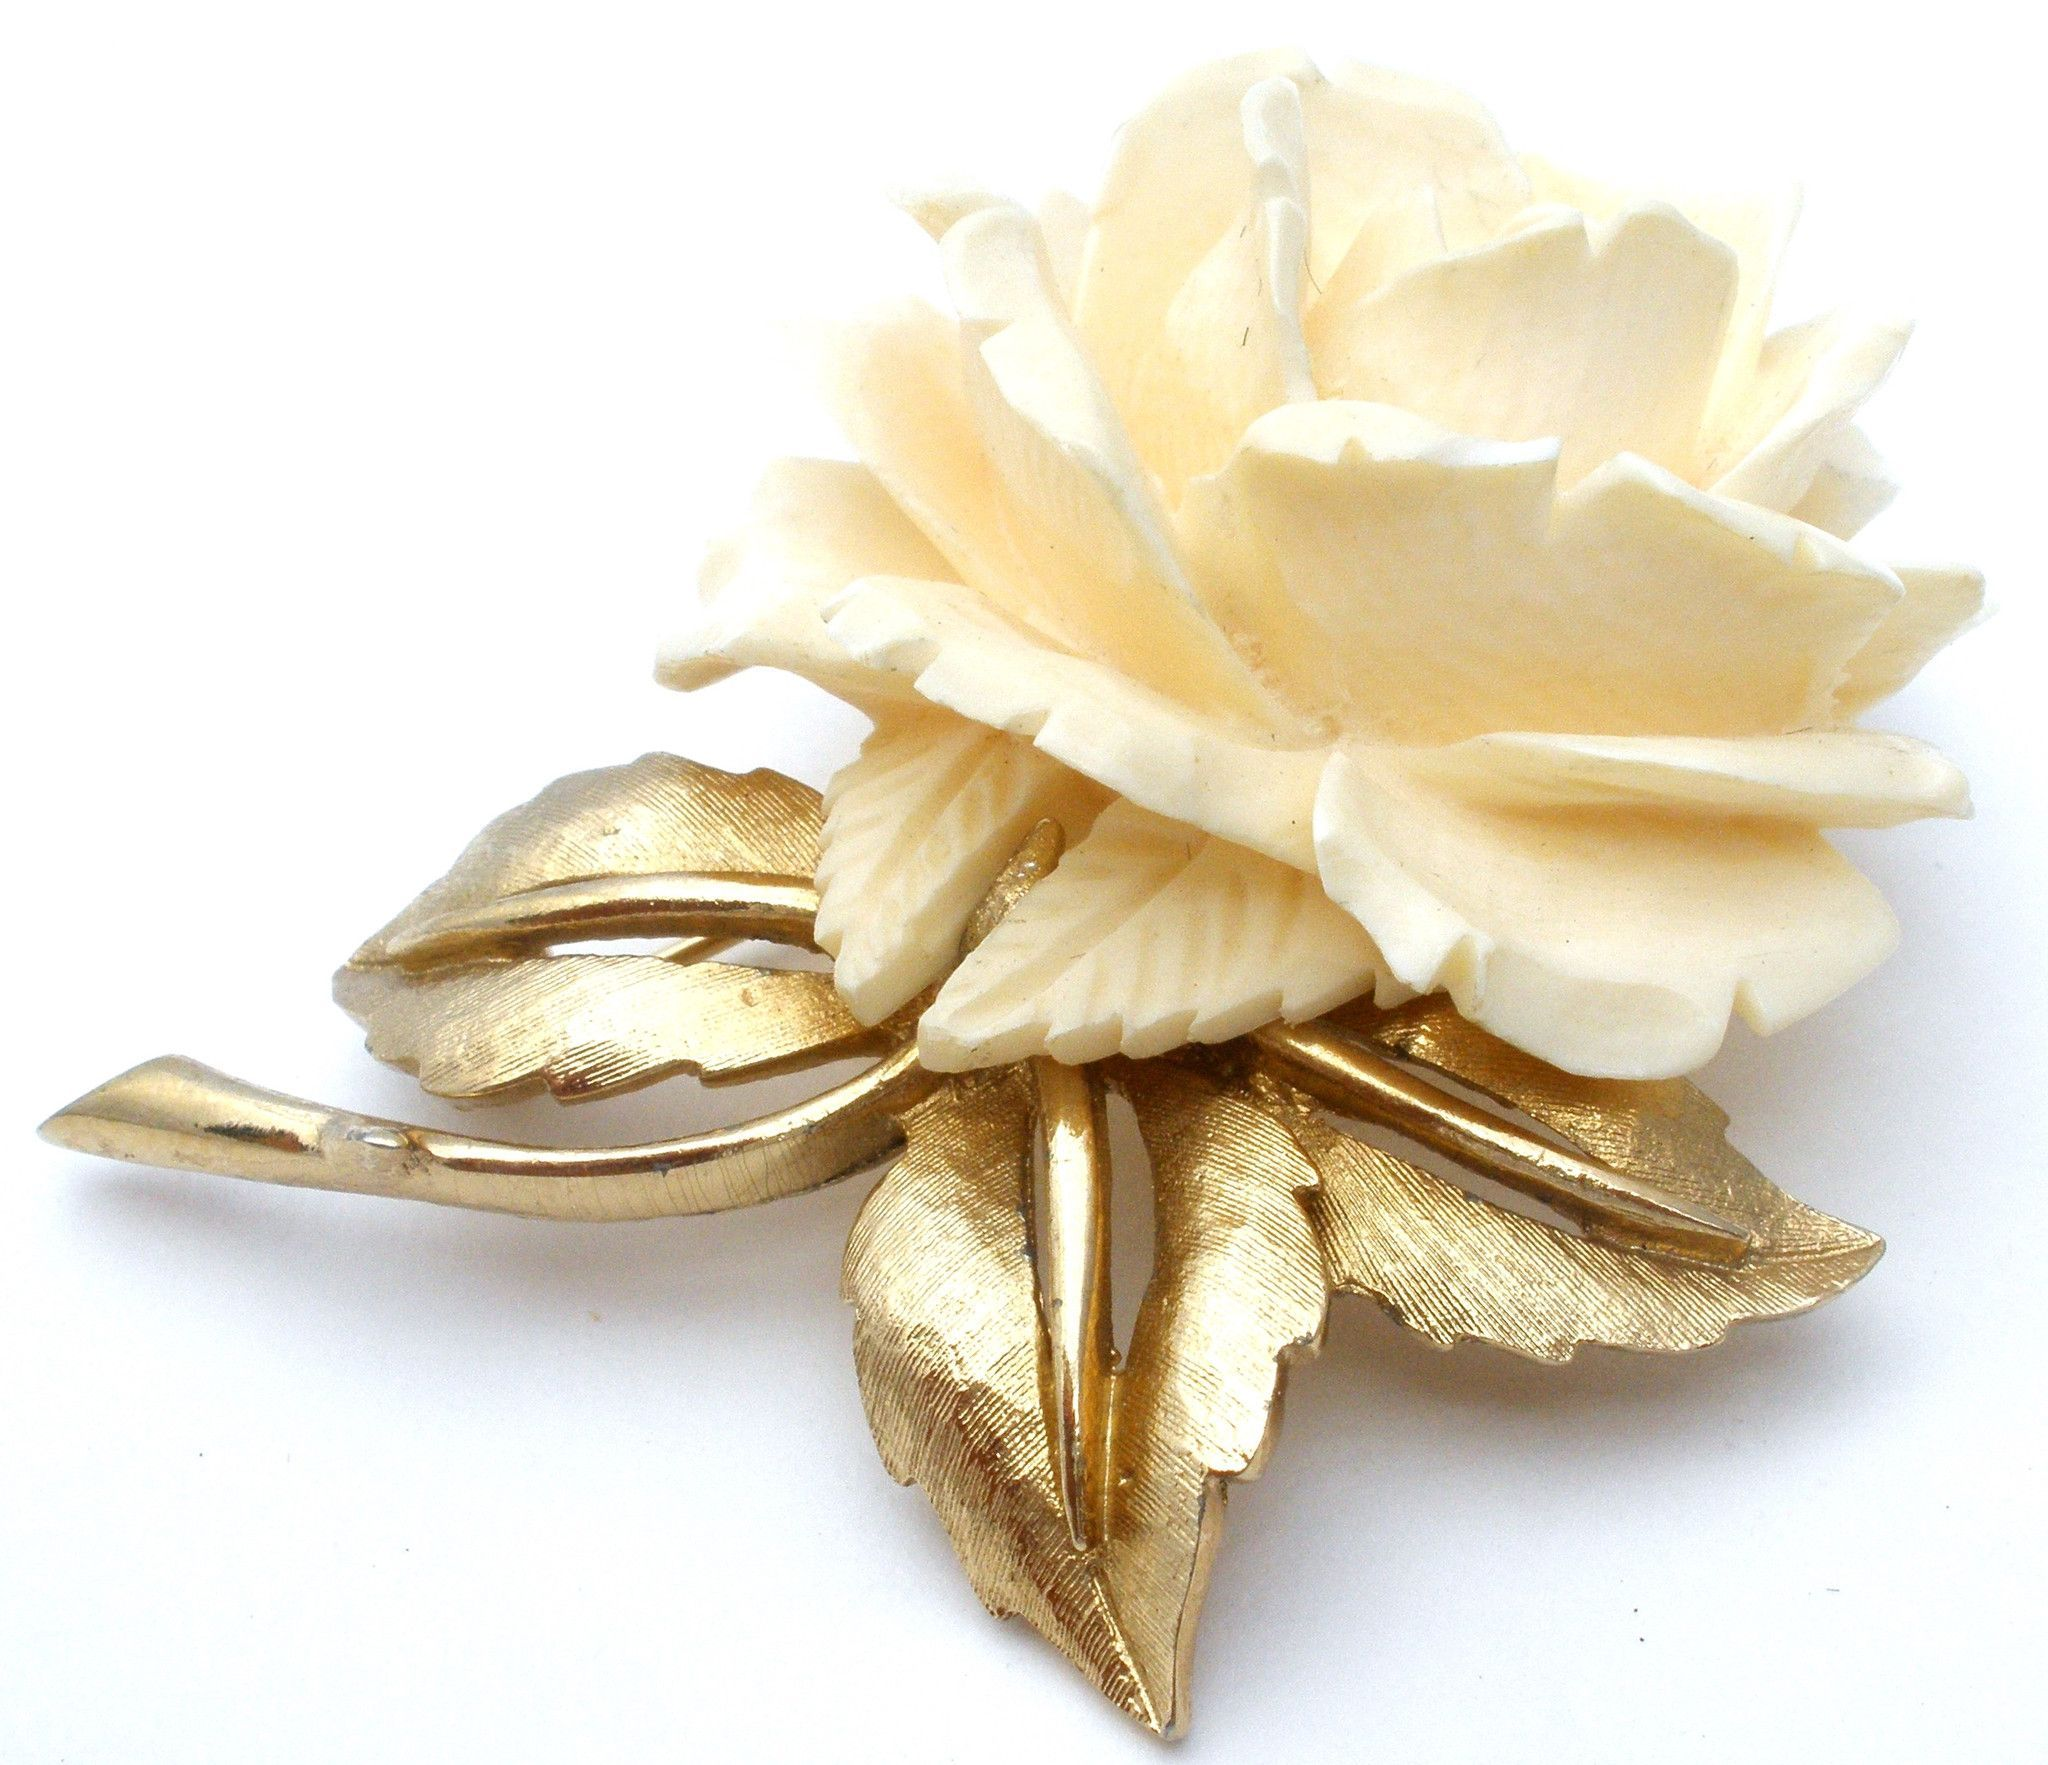 Boucher Black Flower Rose Pin Brooch Signed Numbered: Designer Signed Flower Jewelry Brooches